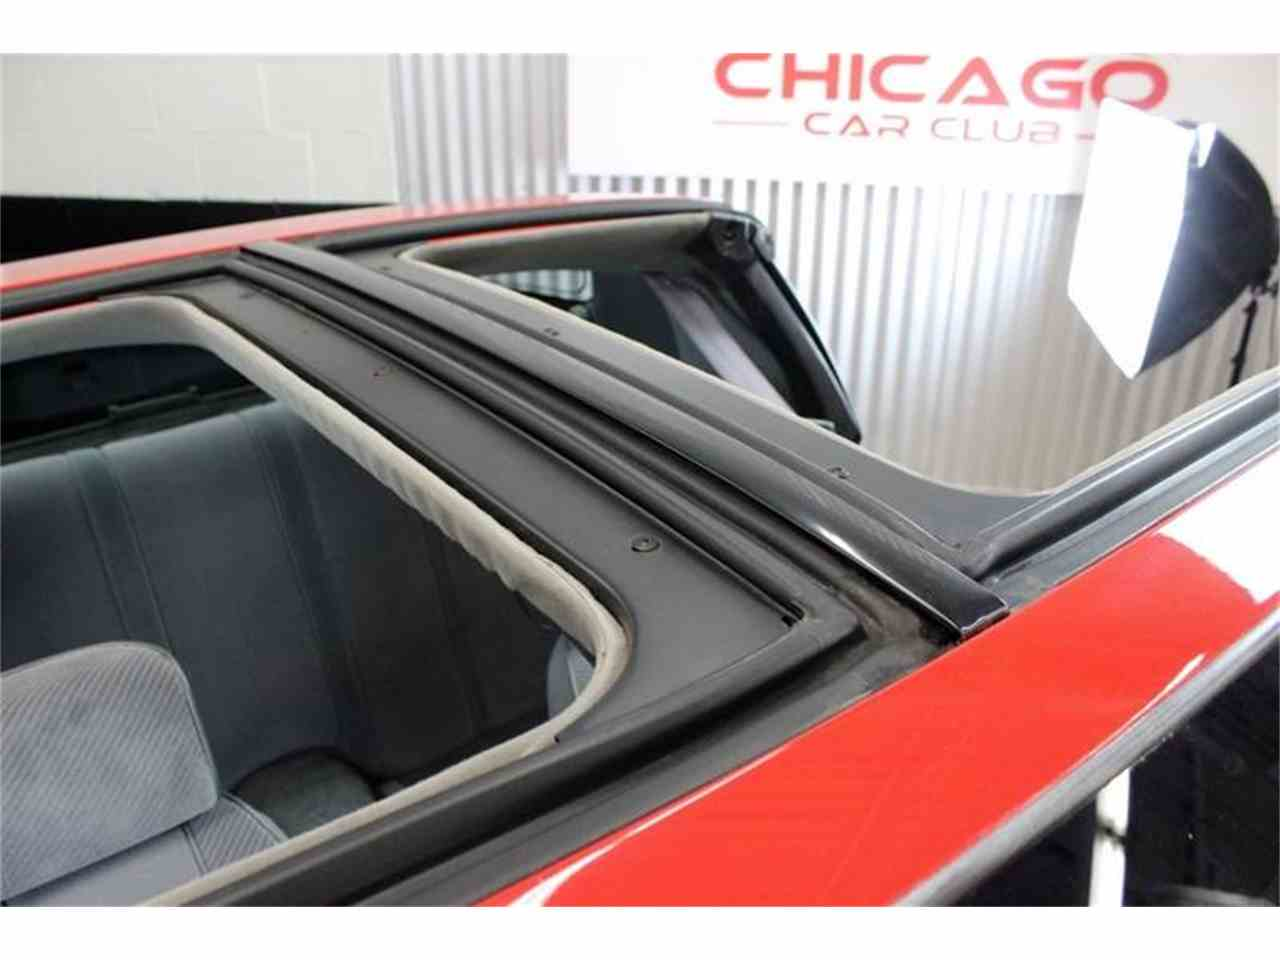 Large Picture of '85 Chevrolet Camaro located in Chicago Illinois - $13,900.00 - MH2P